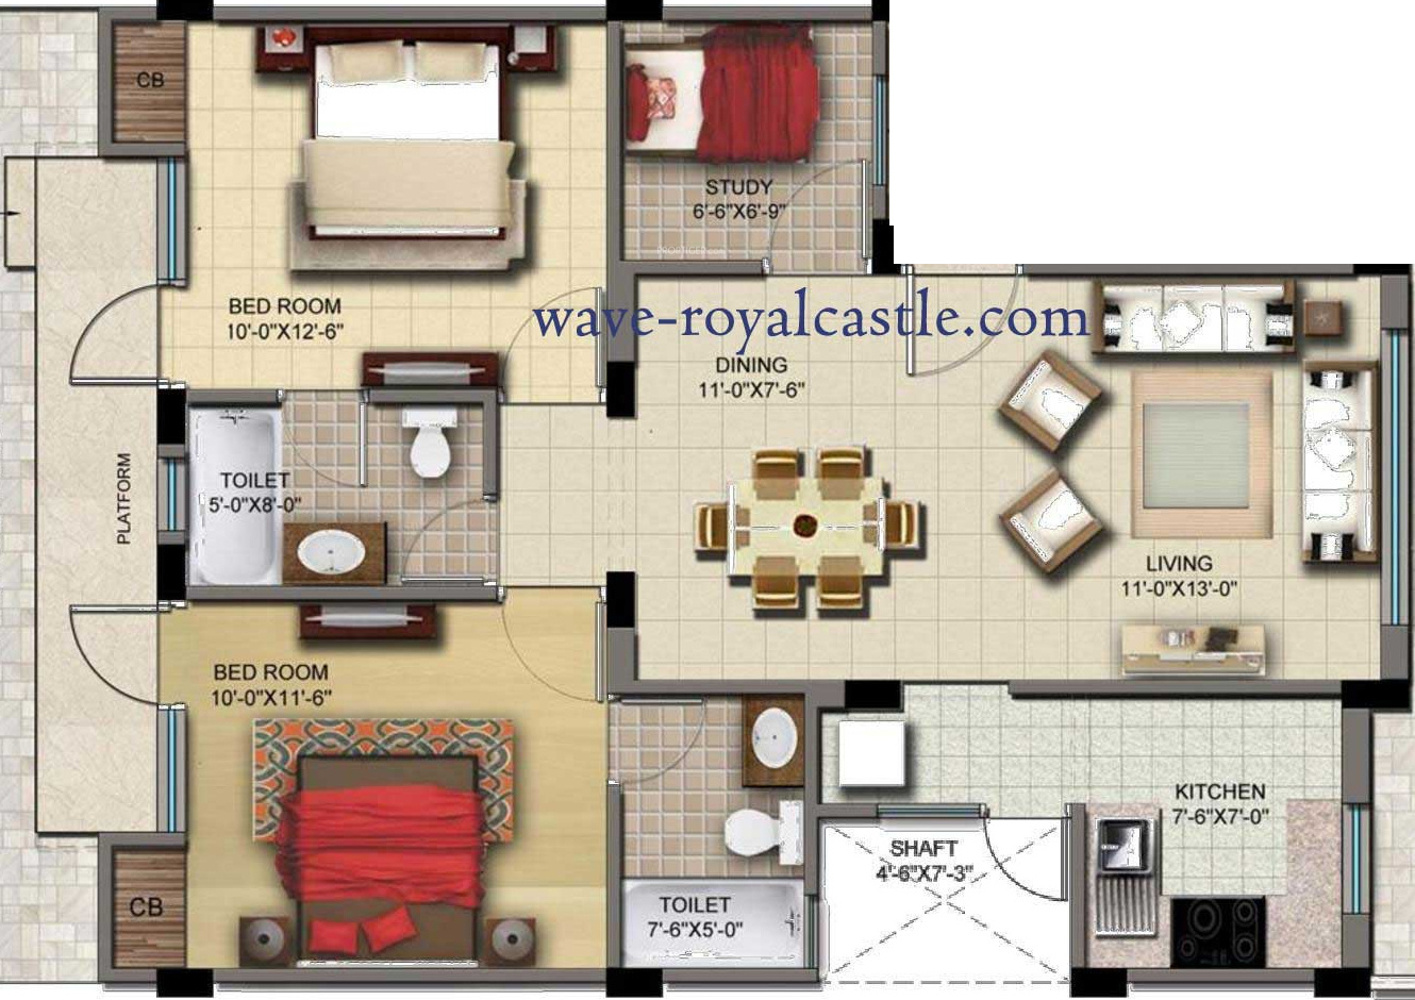 Wave Royal Castle Apartment In Dasna Ghaziabad Price